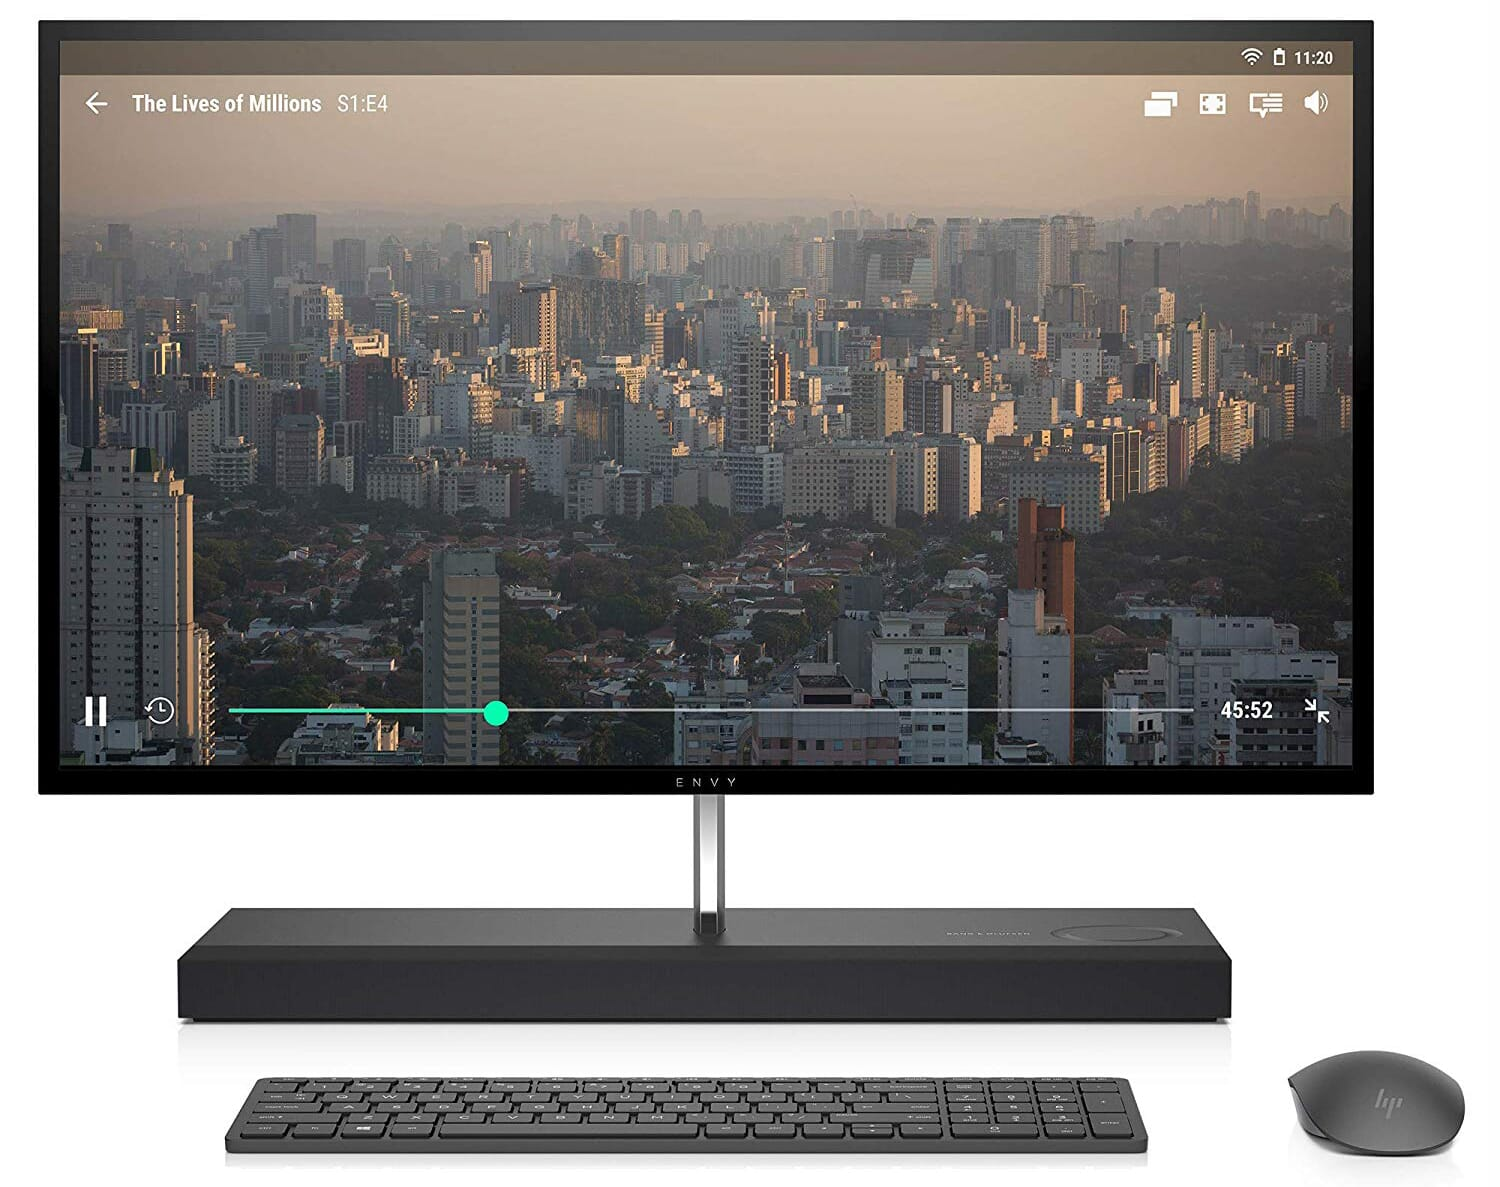 HP Envy Best Computer for Video Editing